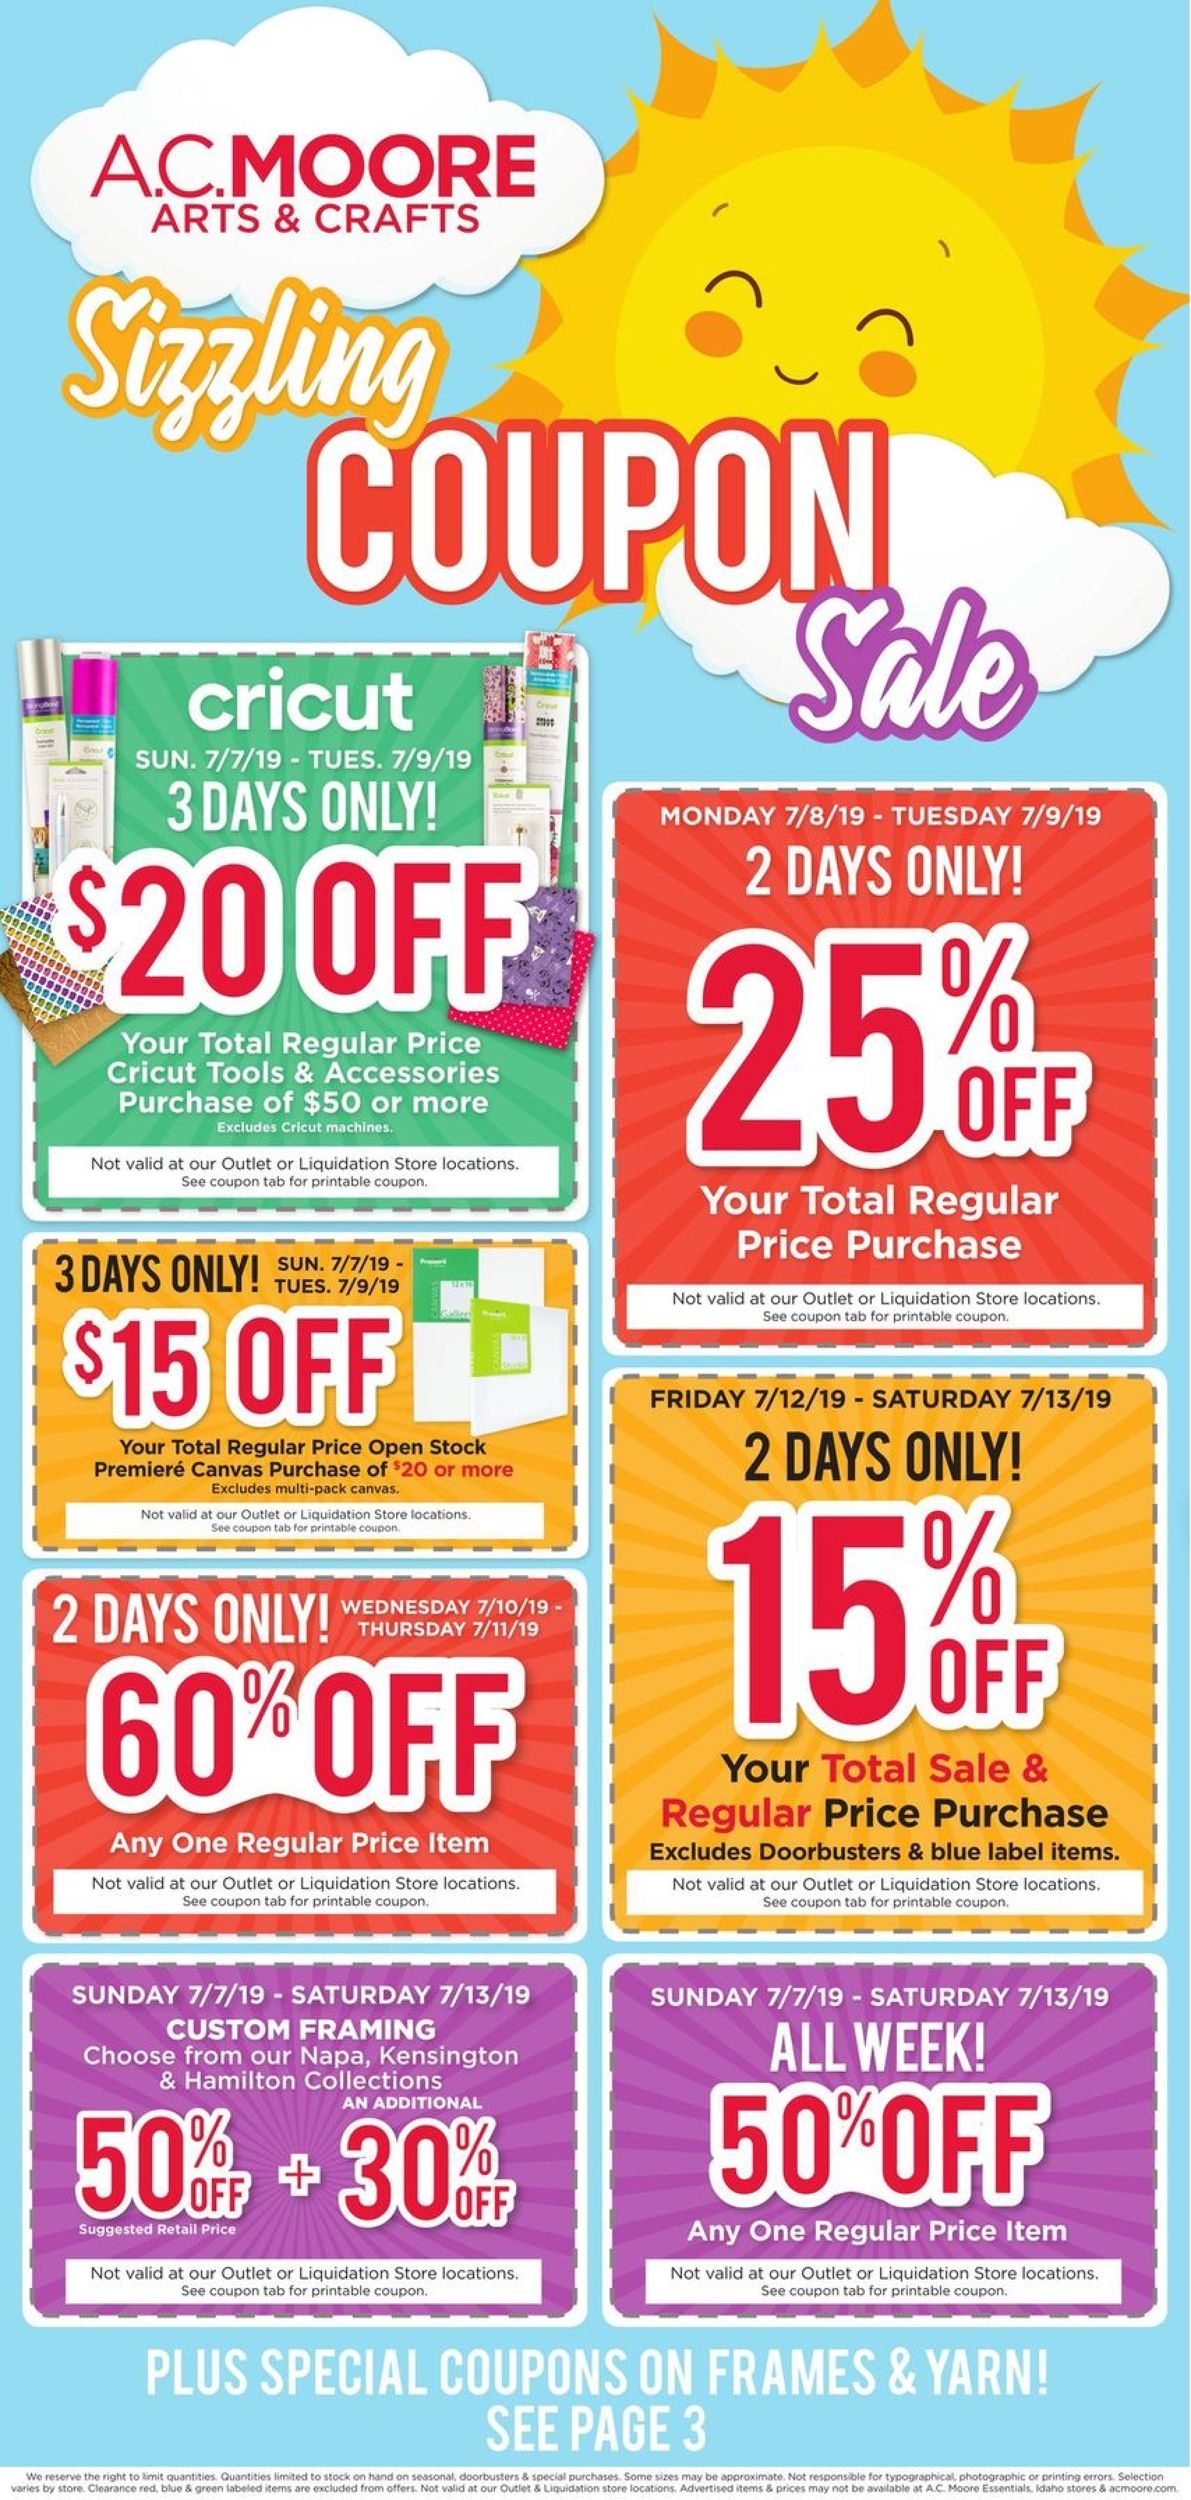 photograph relating to Ac Moore Printable Coupon named A.C. Moore Recent weekly advert 07/07 - 07/13/2019 - constant